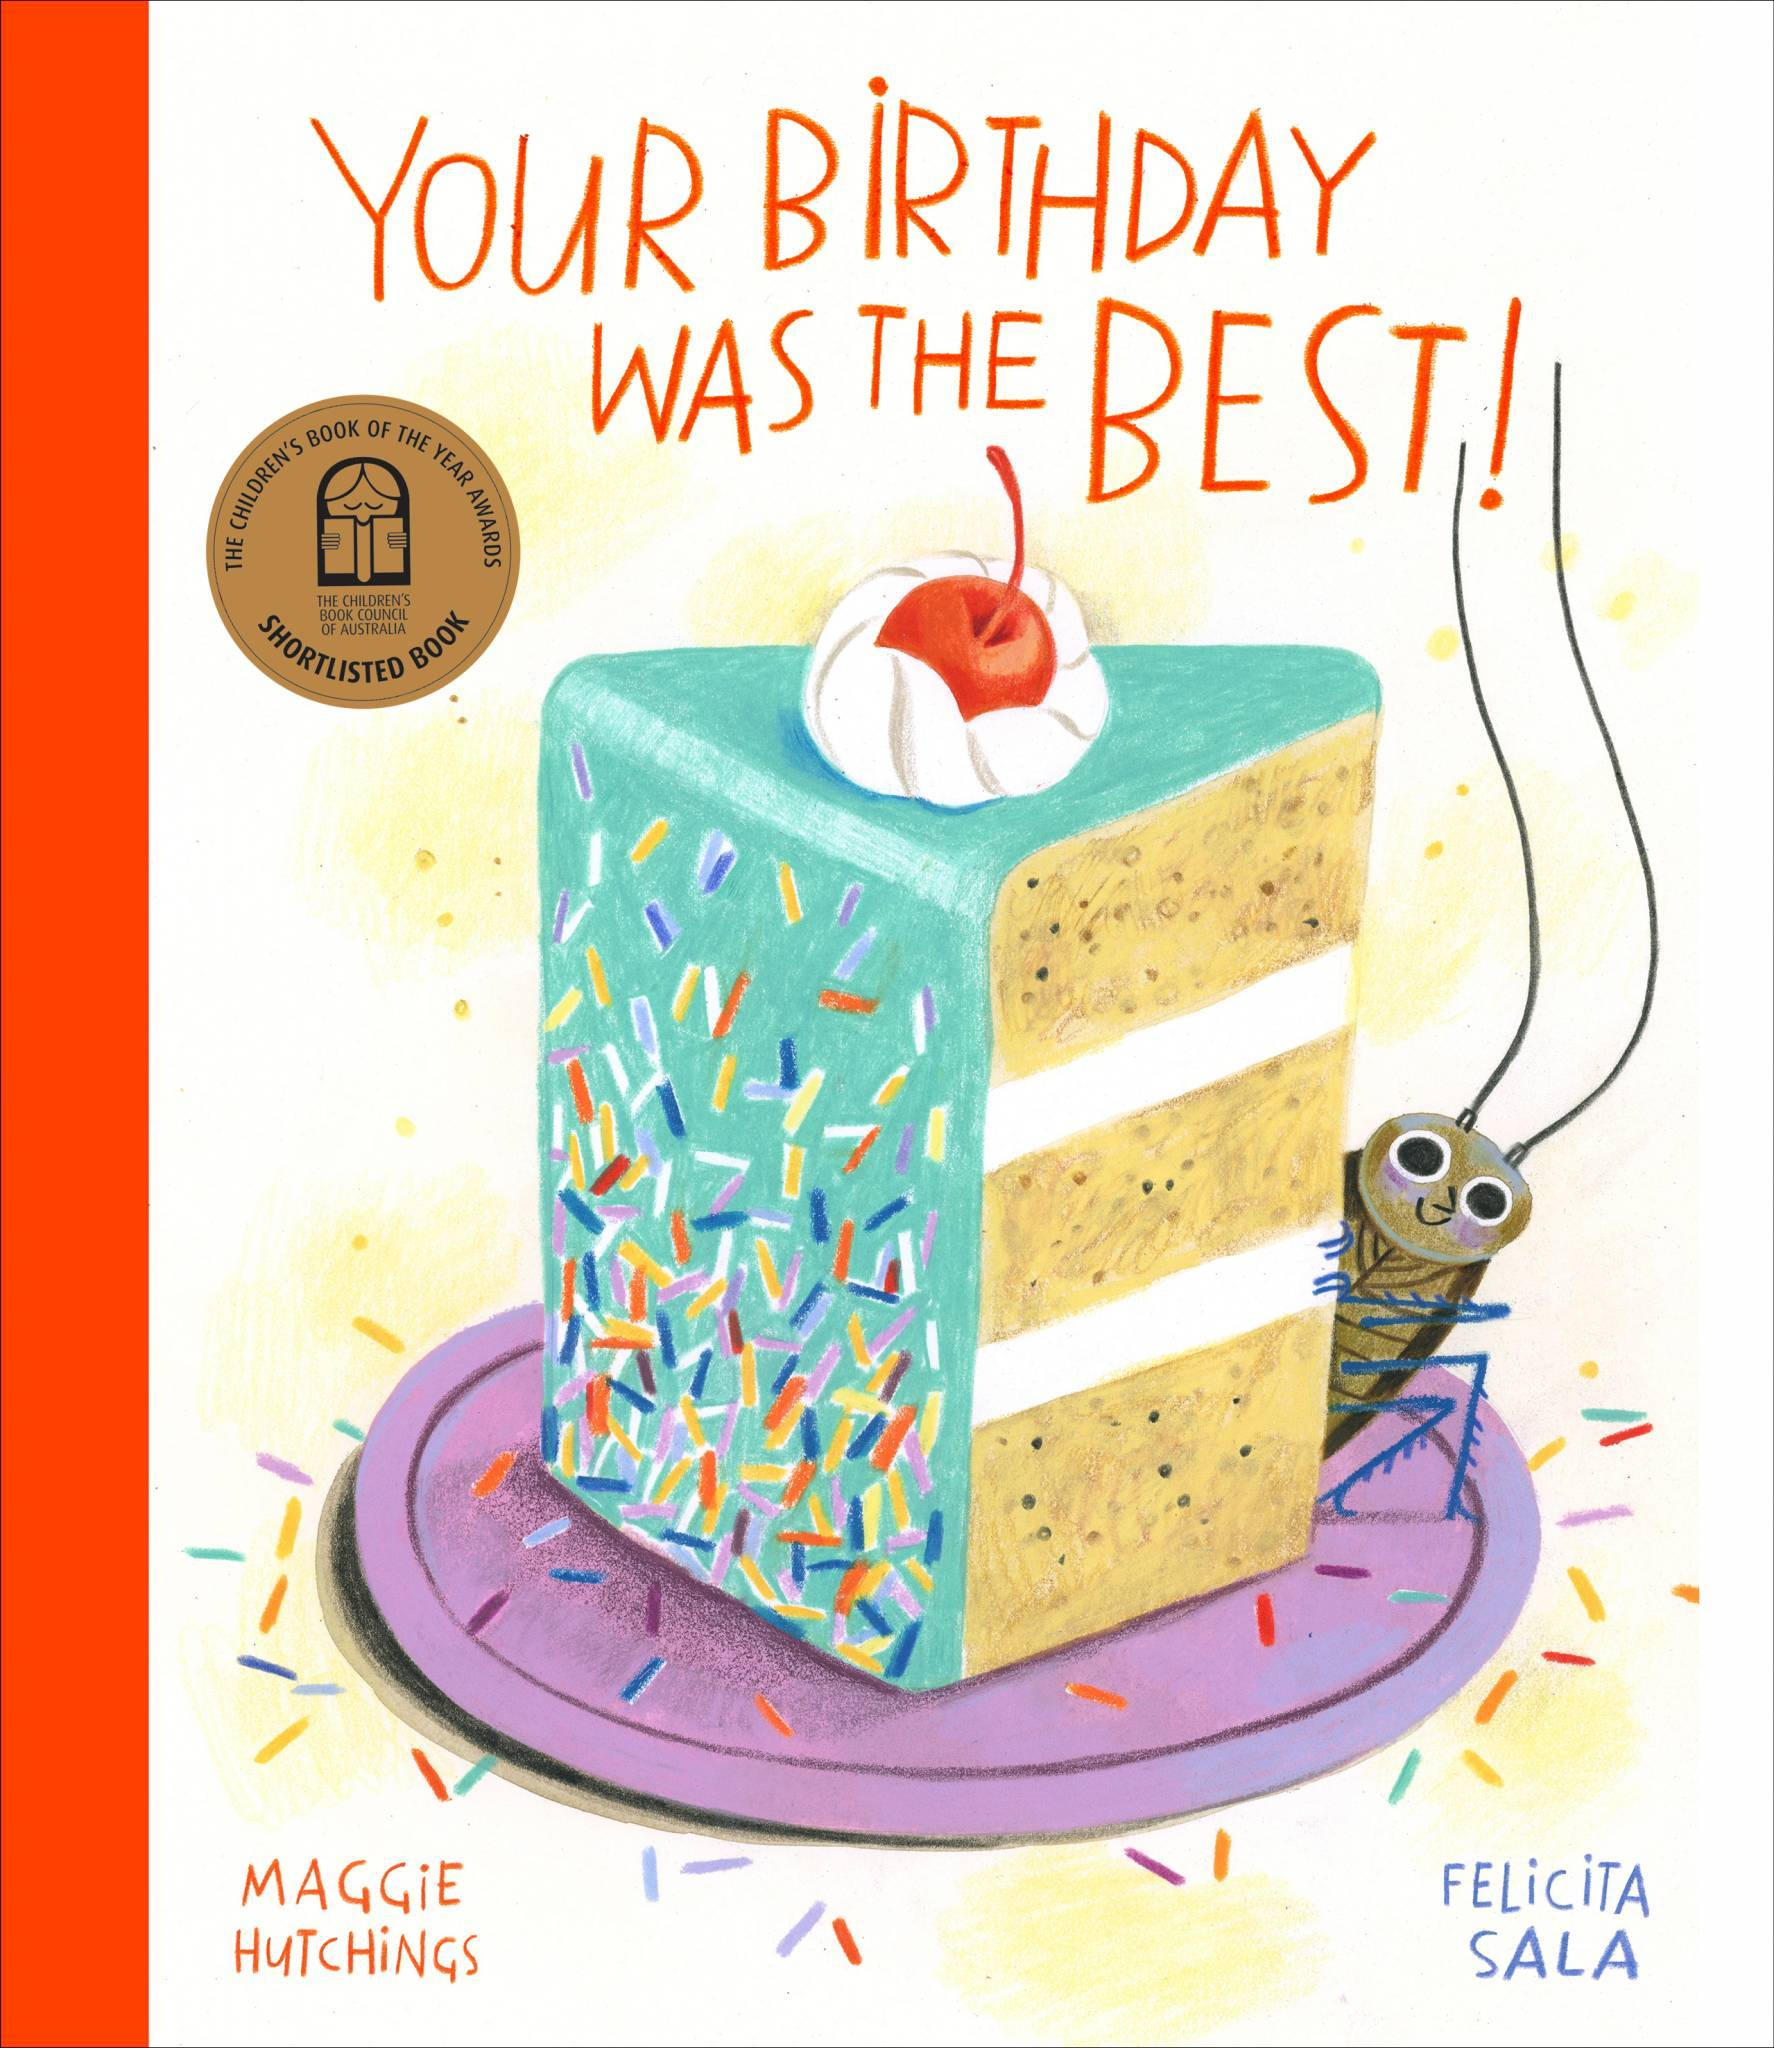 Book Cover for children's book Your Birthday Was The Best. The title is written in orange text across the top of the page. The background is white. The main image is of a slice of birthday cake. It's a sponge cake with green icing with cream and a red cherry on top. There is a friendly cockroach peeking around the right side of the cake. The cake is on a purple plate.